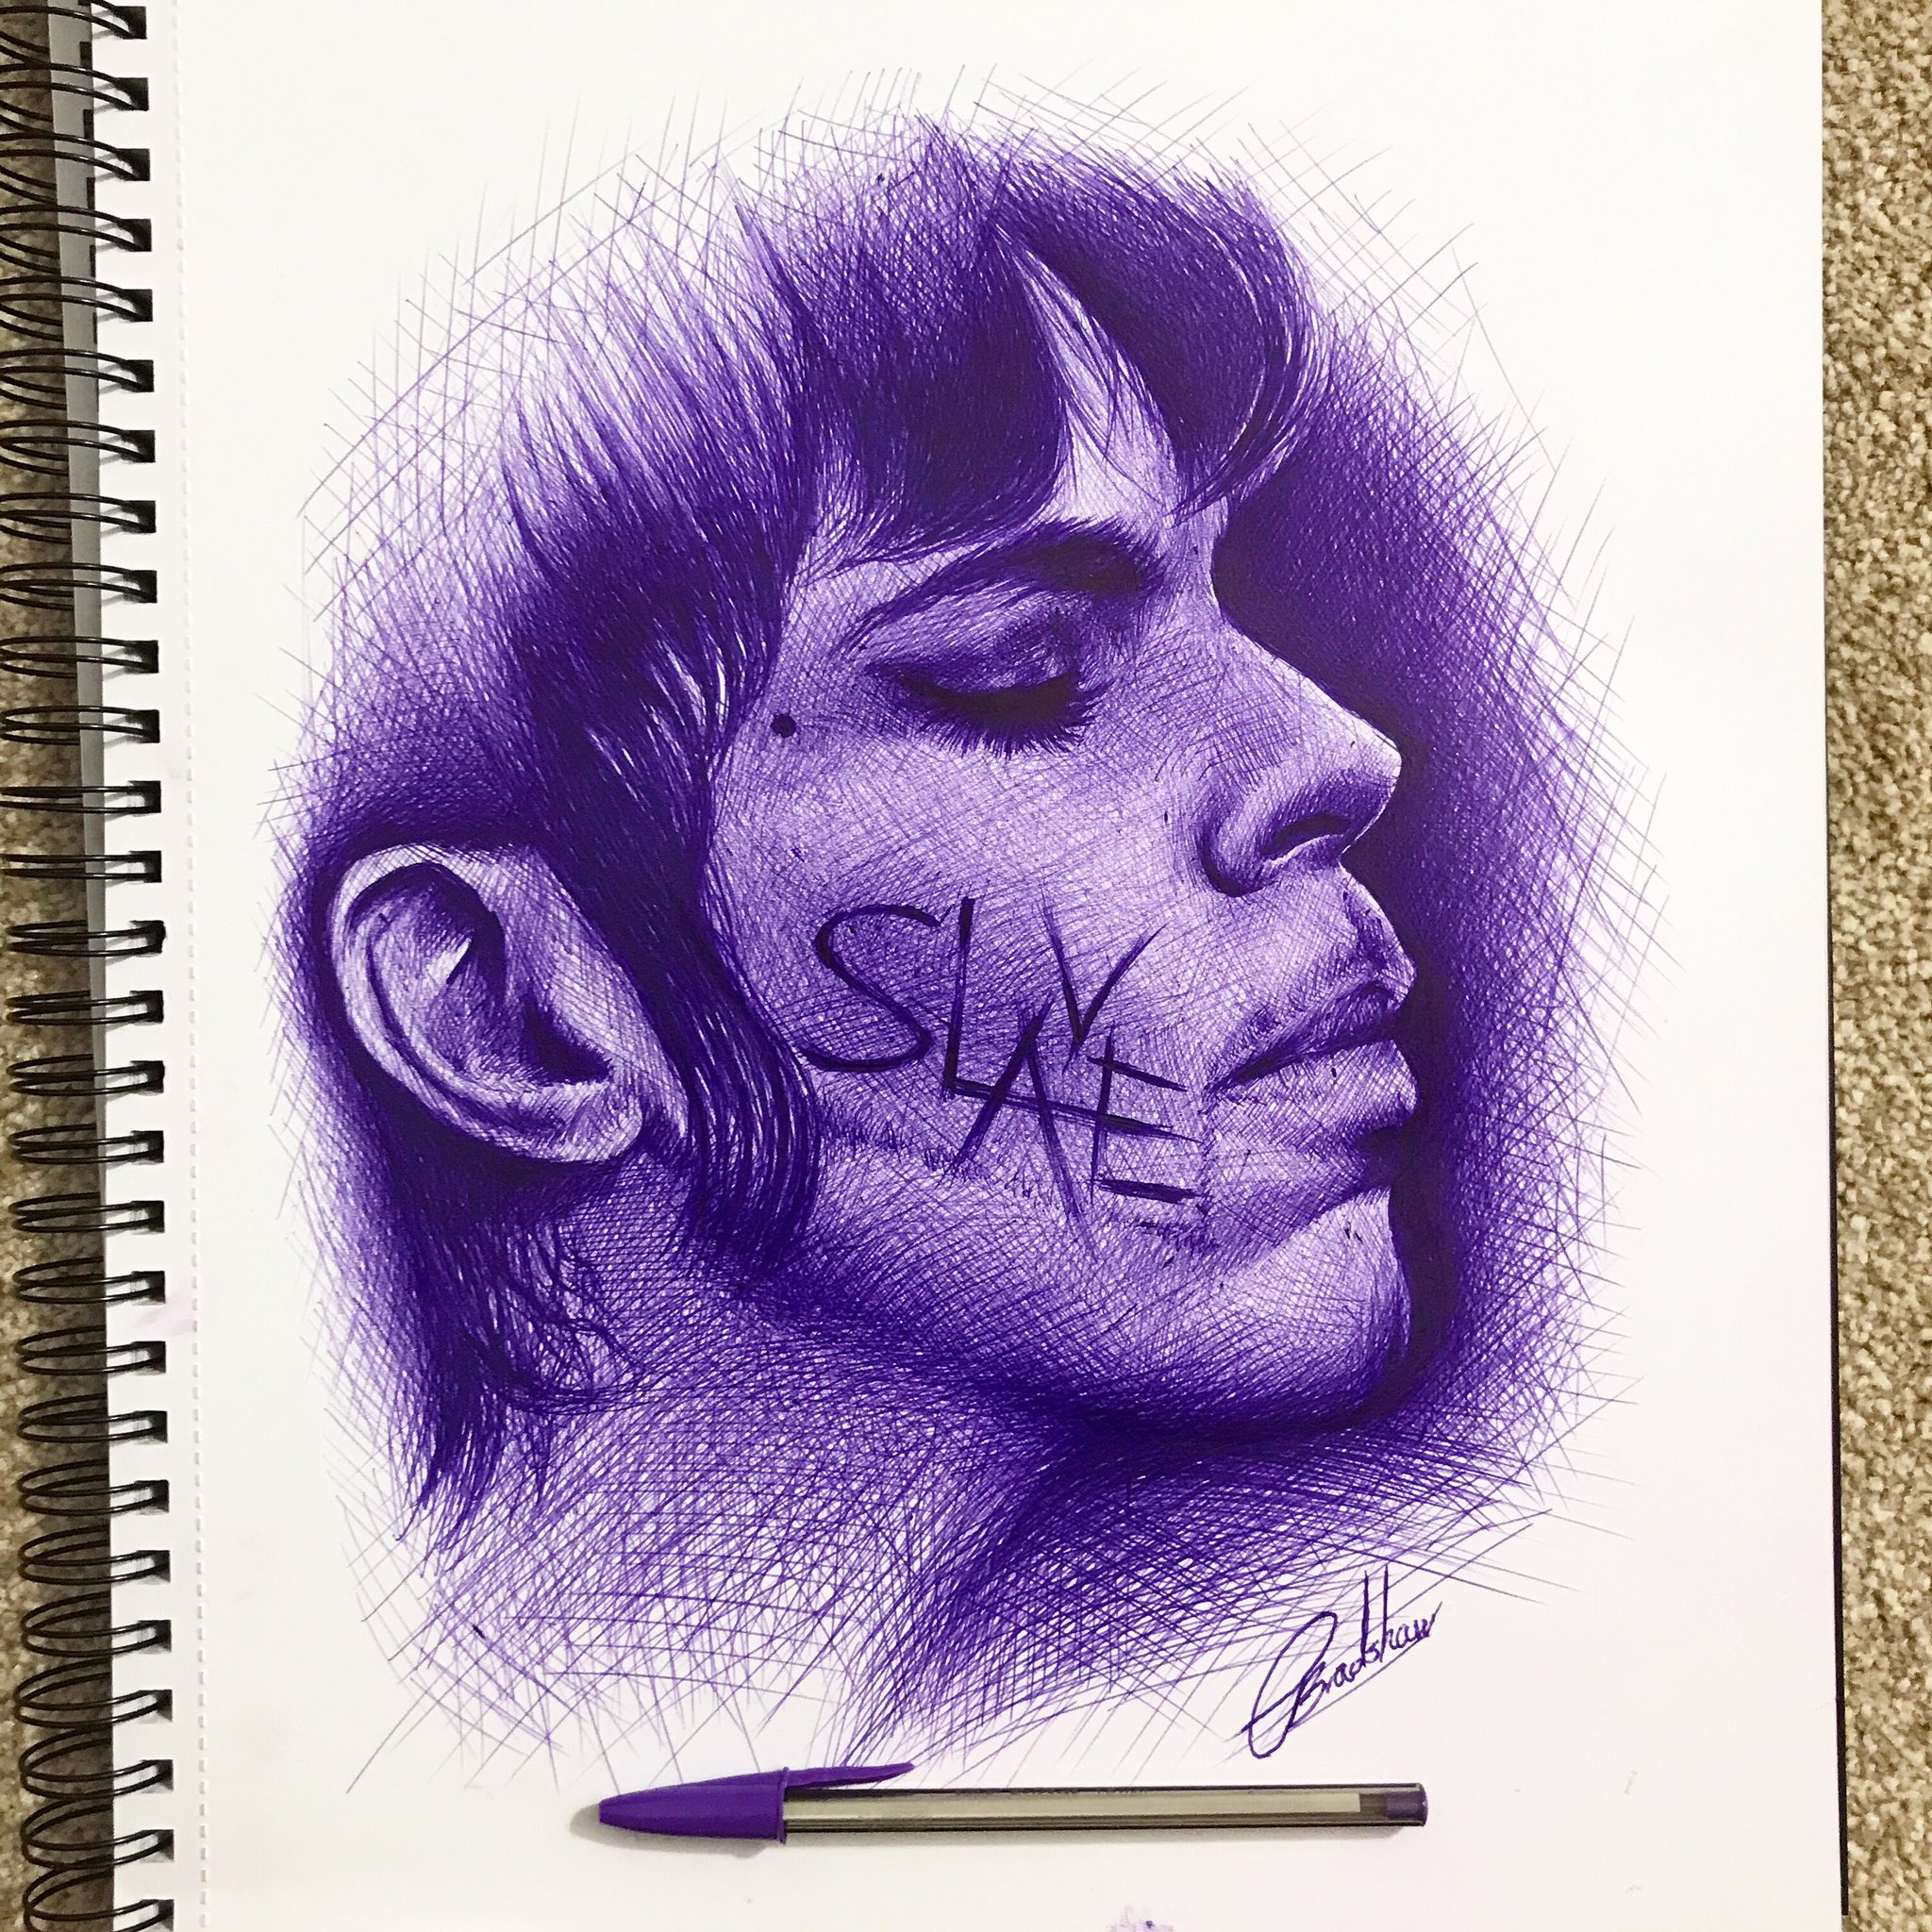 Purple ink sketch of #Prince. #ballpointpen #inksketch #ink #purplerain https://t.co/Vgs1N1i4Ye